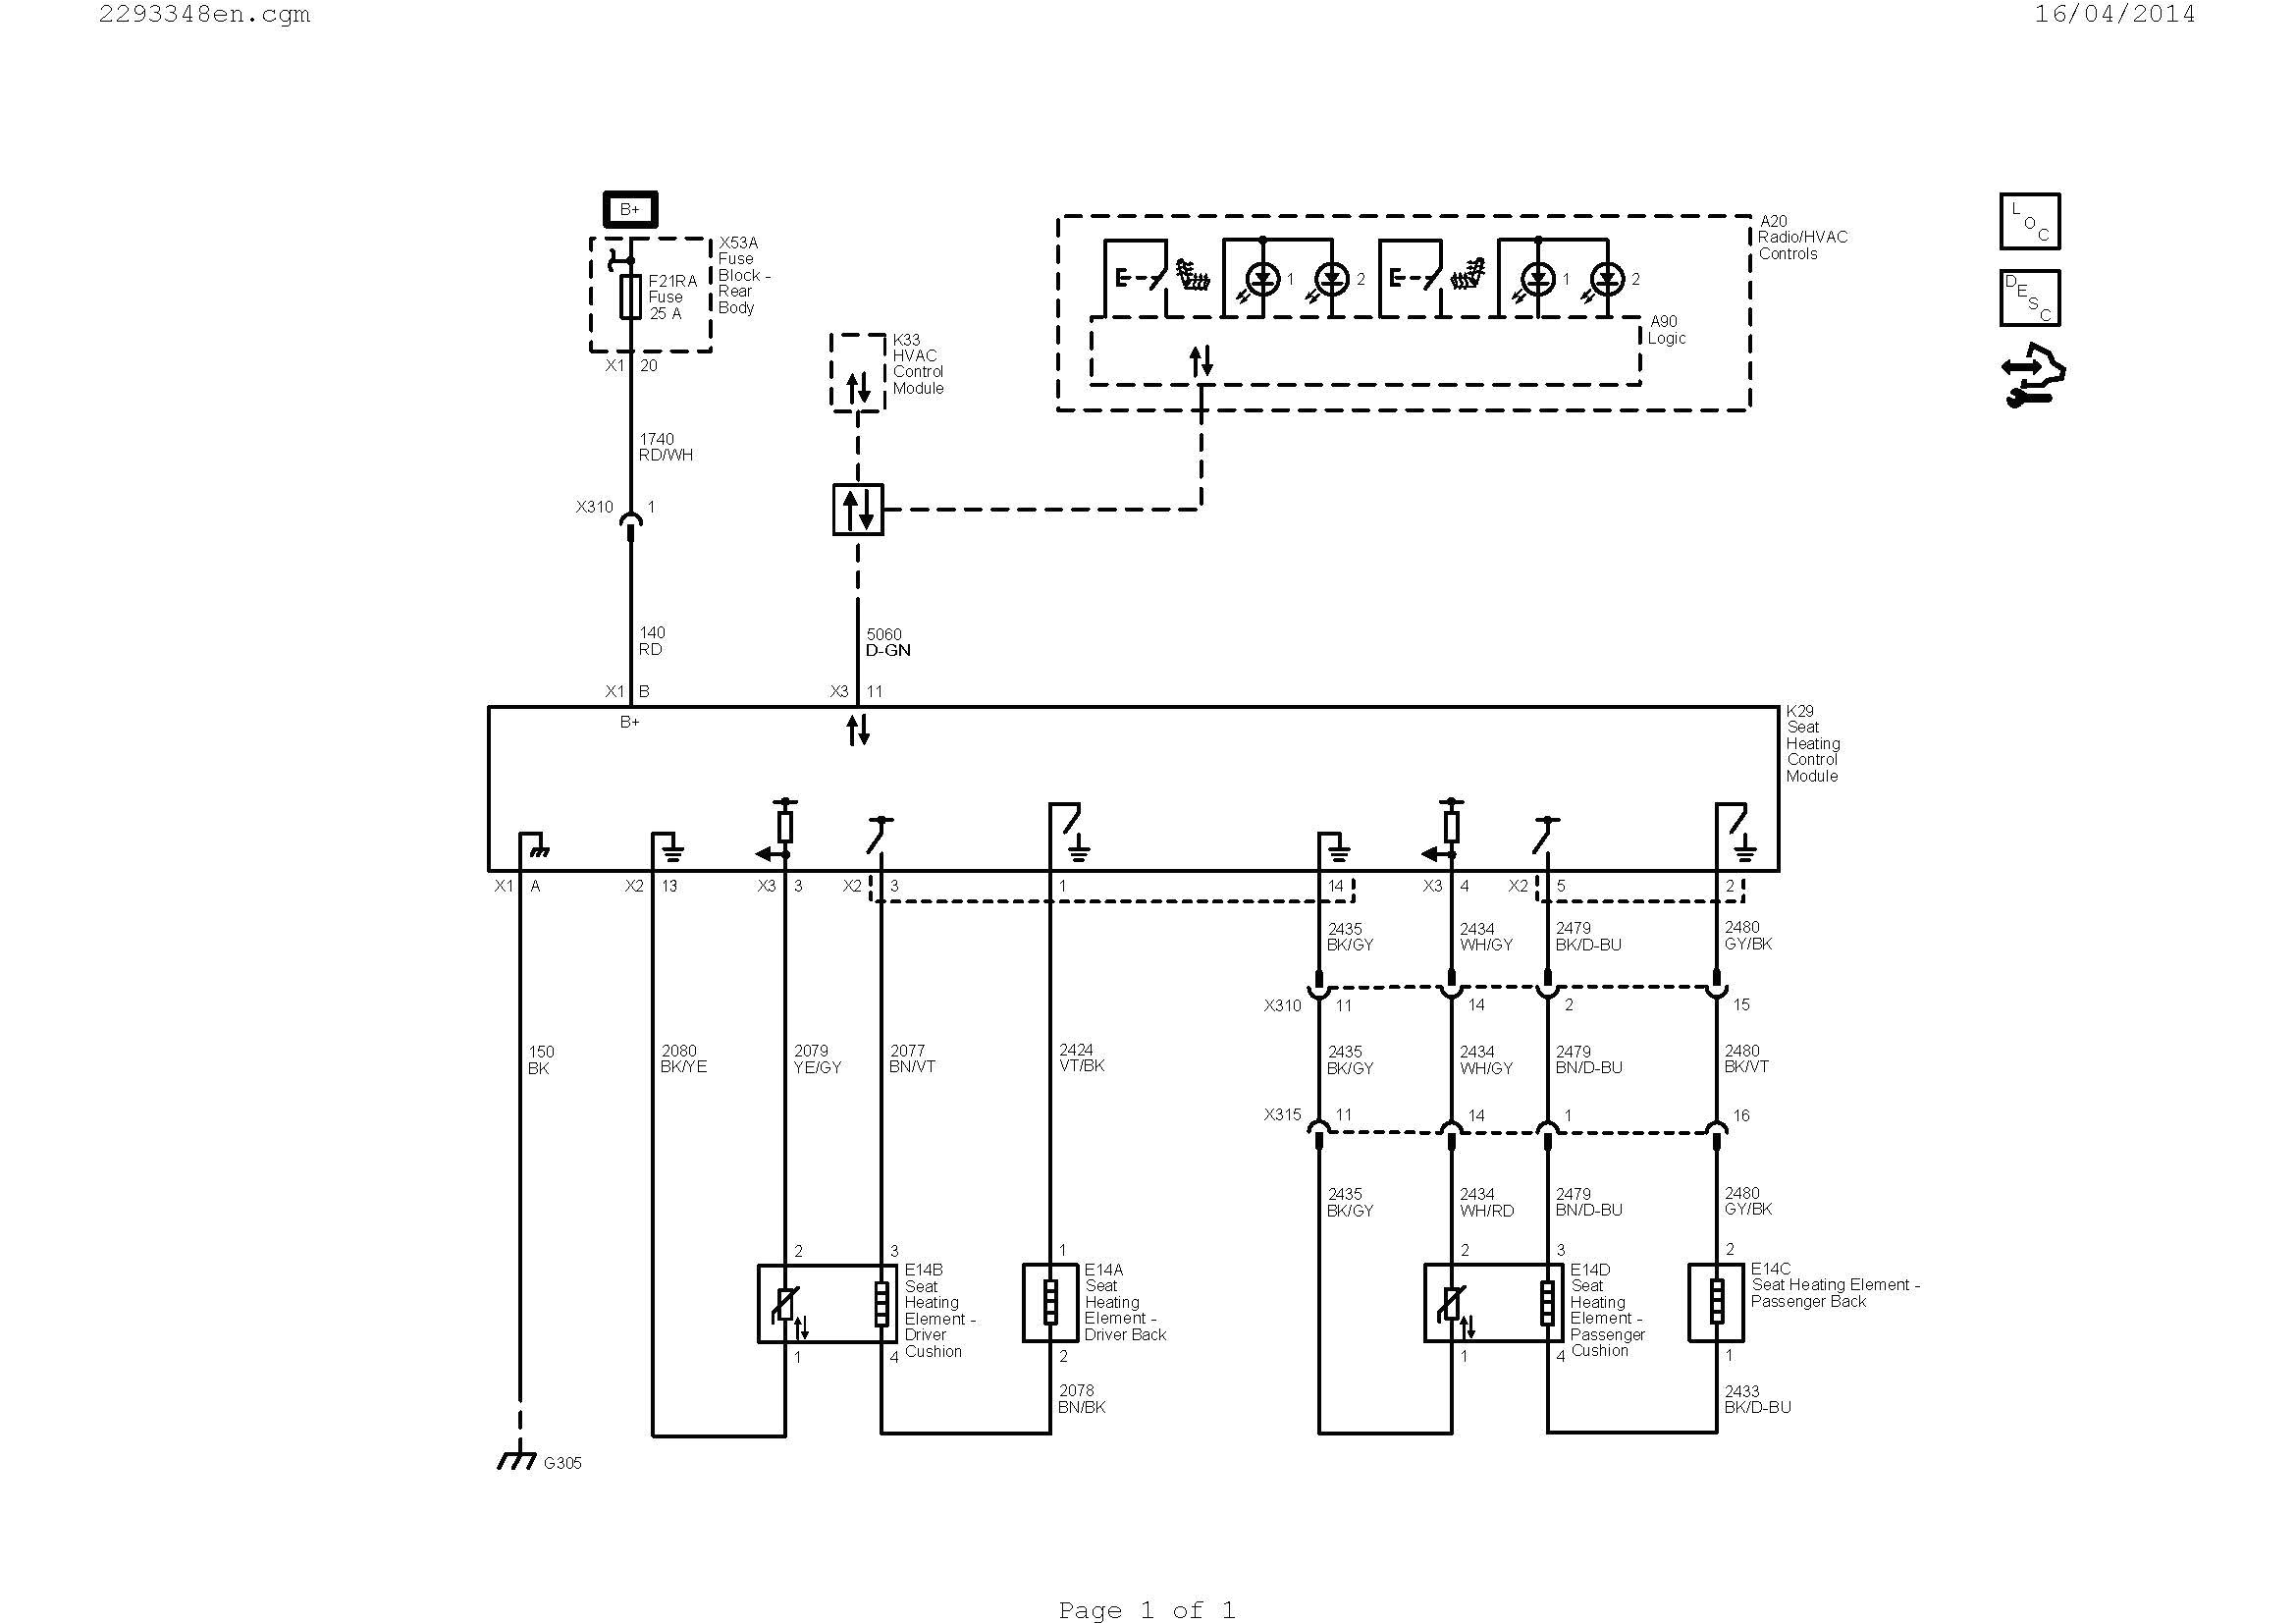 Field Wiring Diagram Gallery Of sola Transformer Wiring Diagram Sample